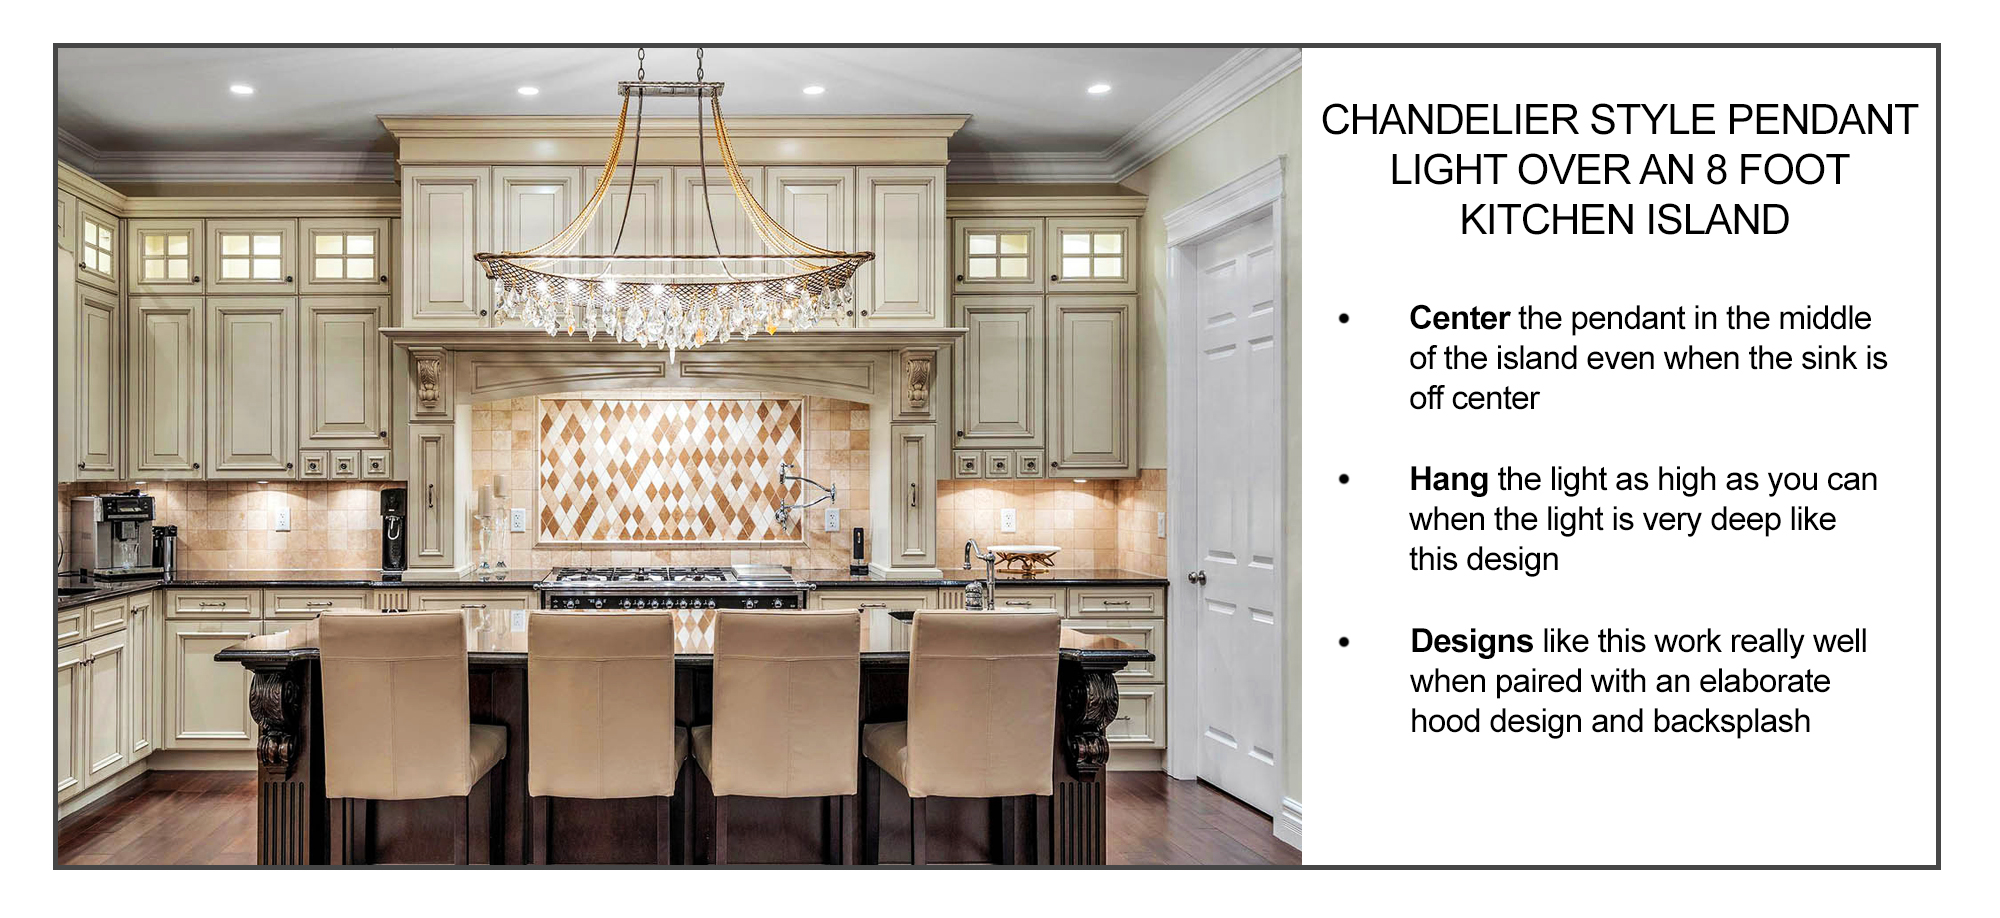 how to hang a chandelier pendant light over a kitchen island inforgraphic